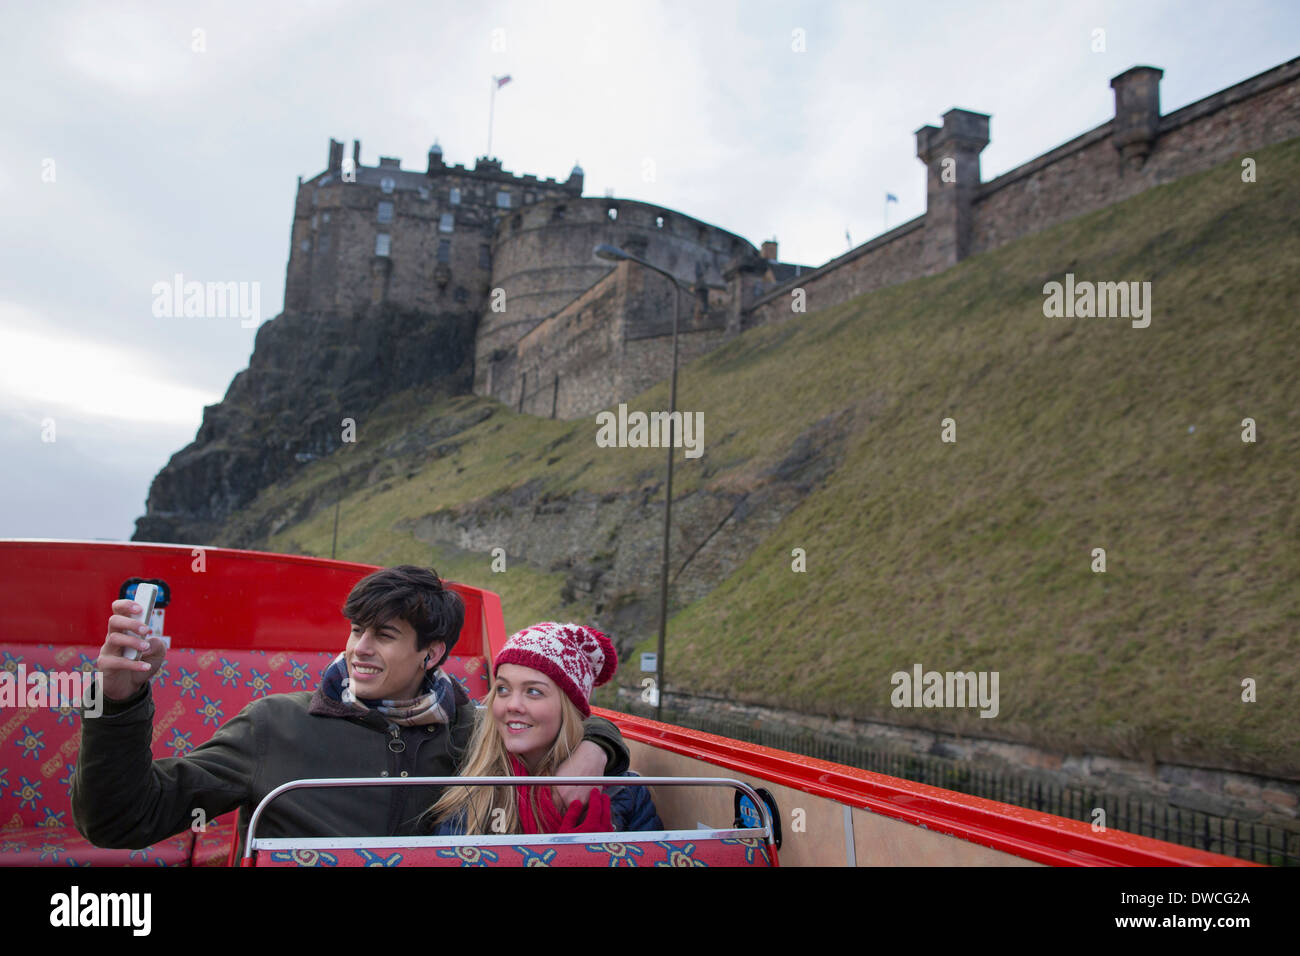 A young couple on an open-top bus tour of Edinburgh Scotland - Stock Image